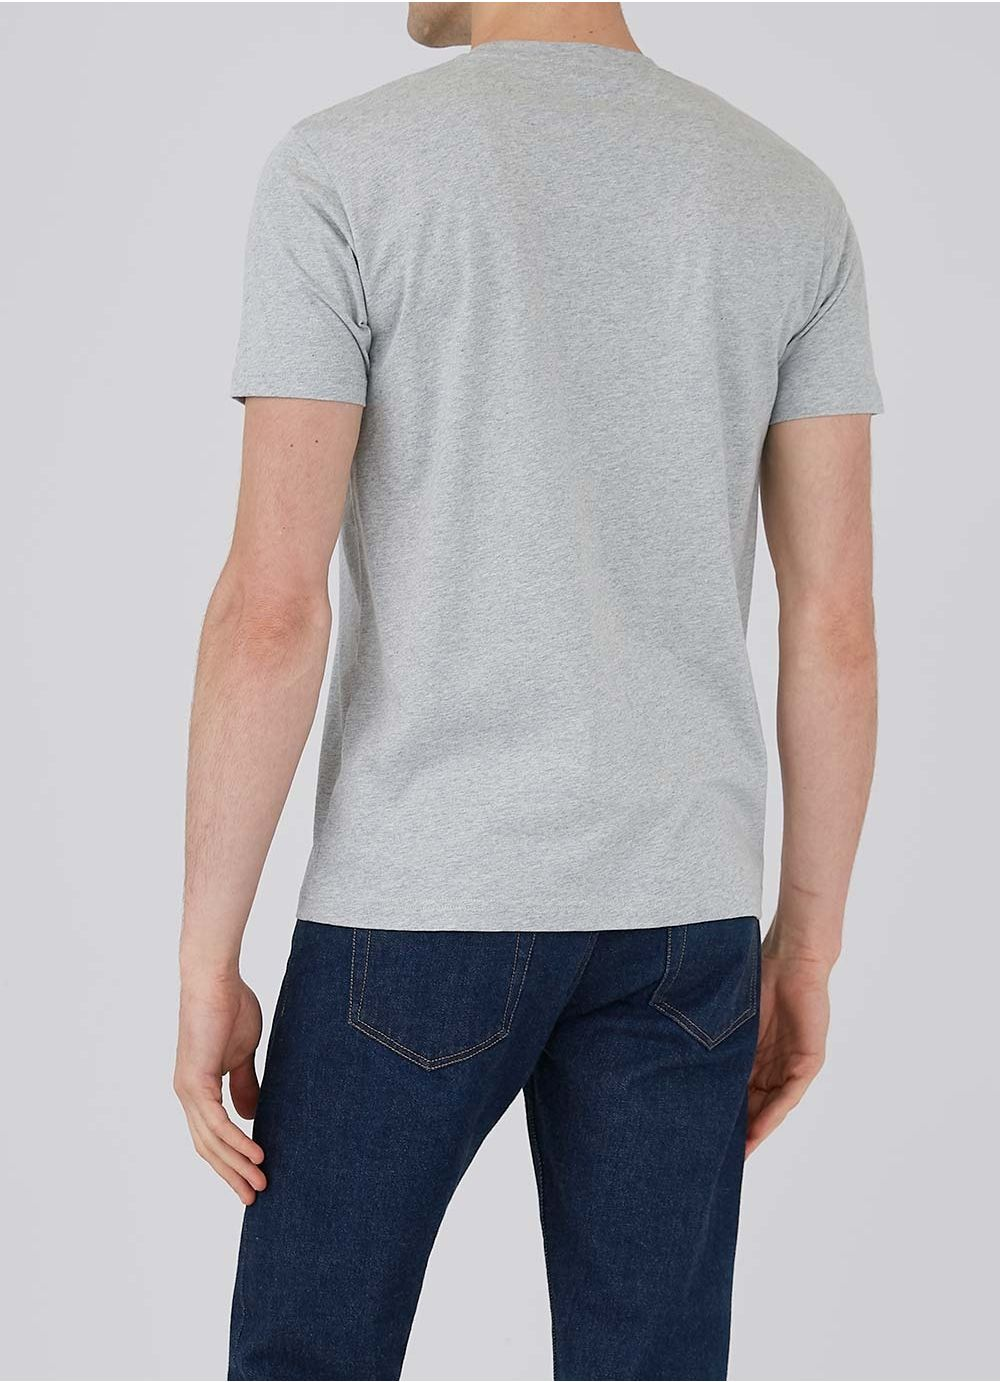 Organic Cotton Riviera T-Shirt - Grey Melange